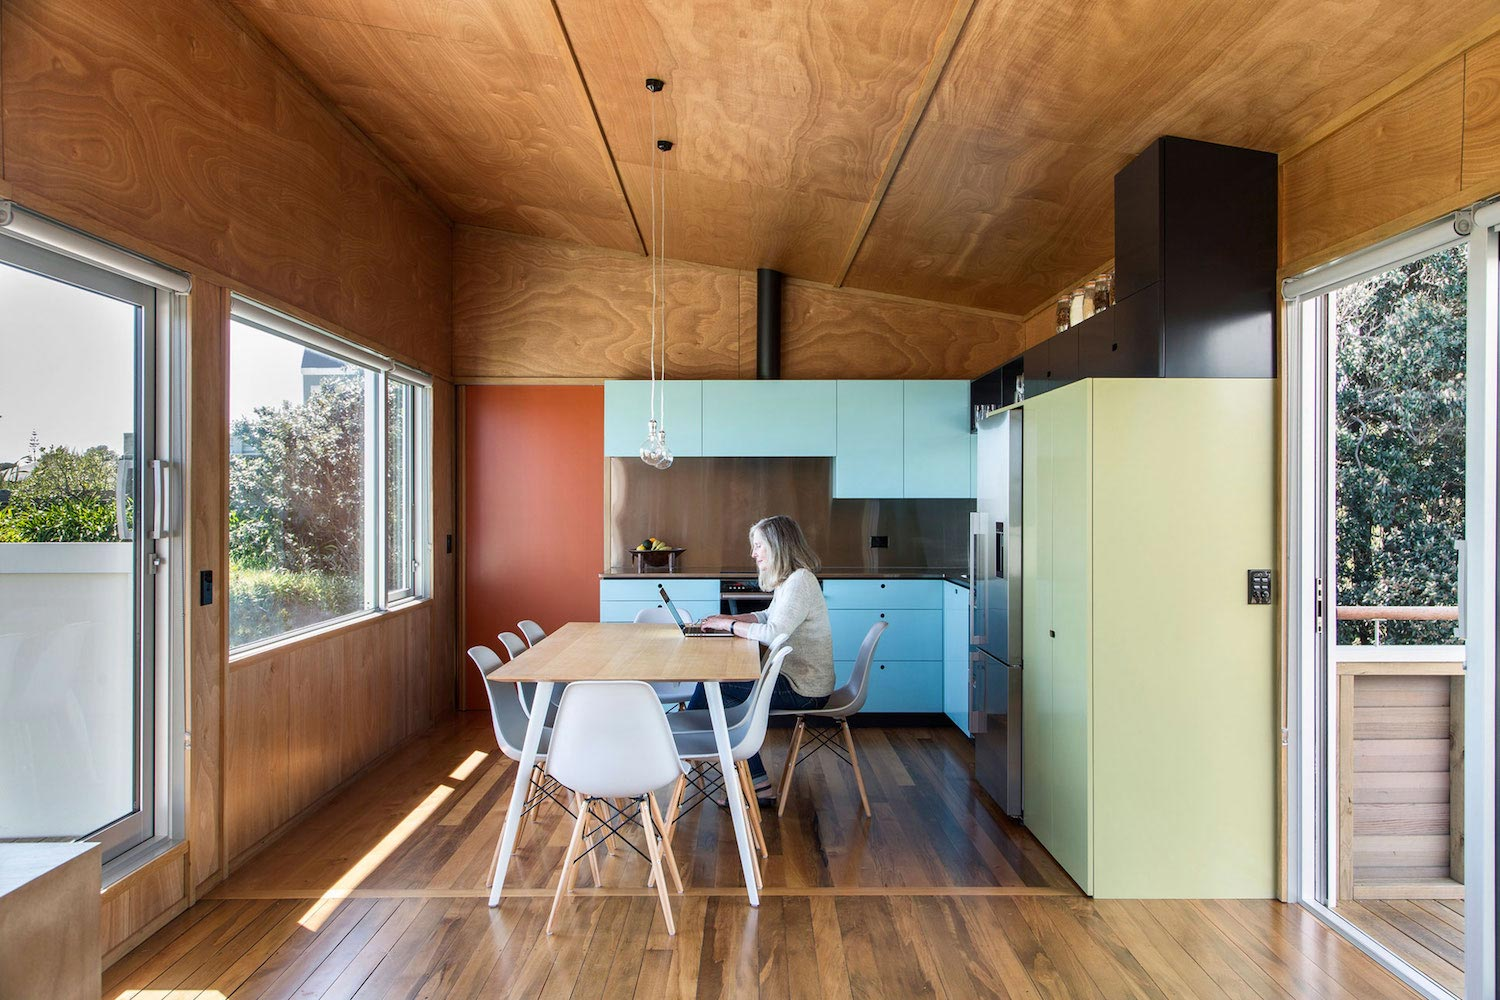 Renovation Field Way Bach House Waikanae New Zealand Designed Parsonson  Architects 12